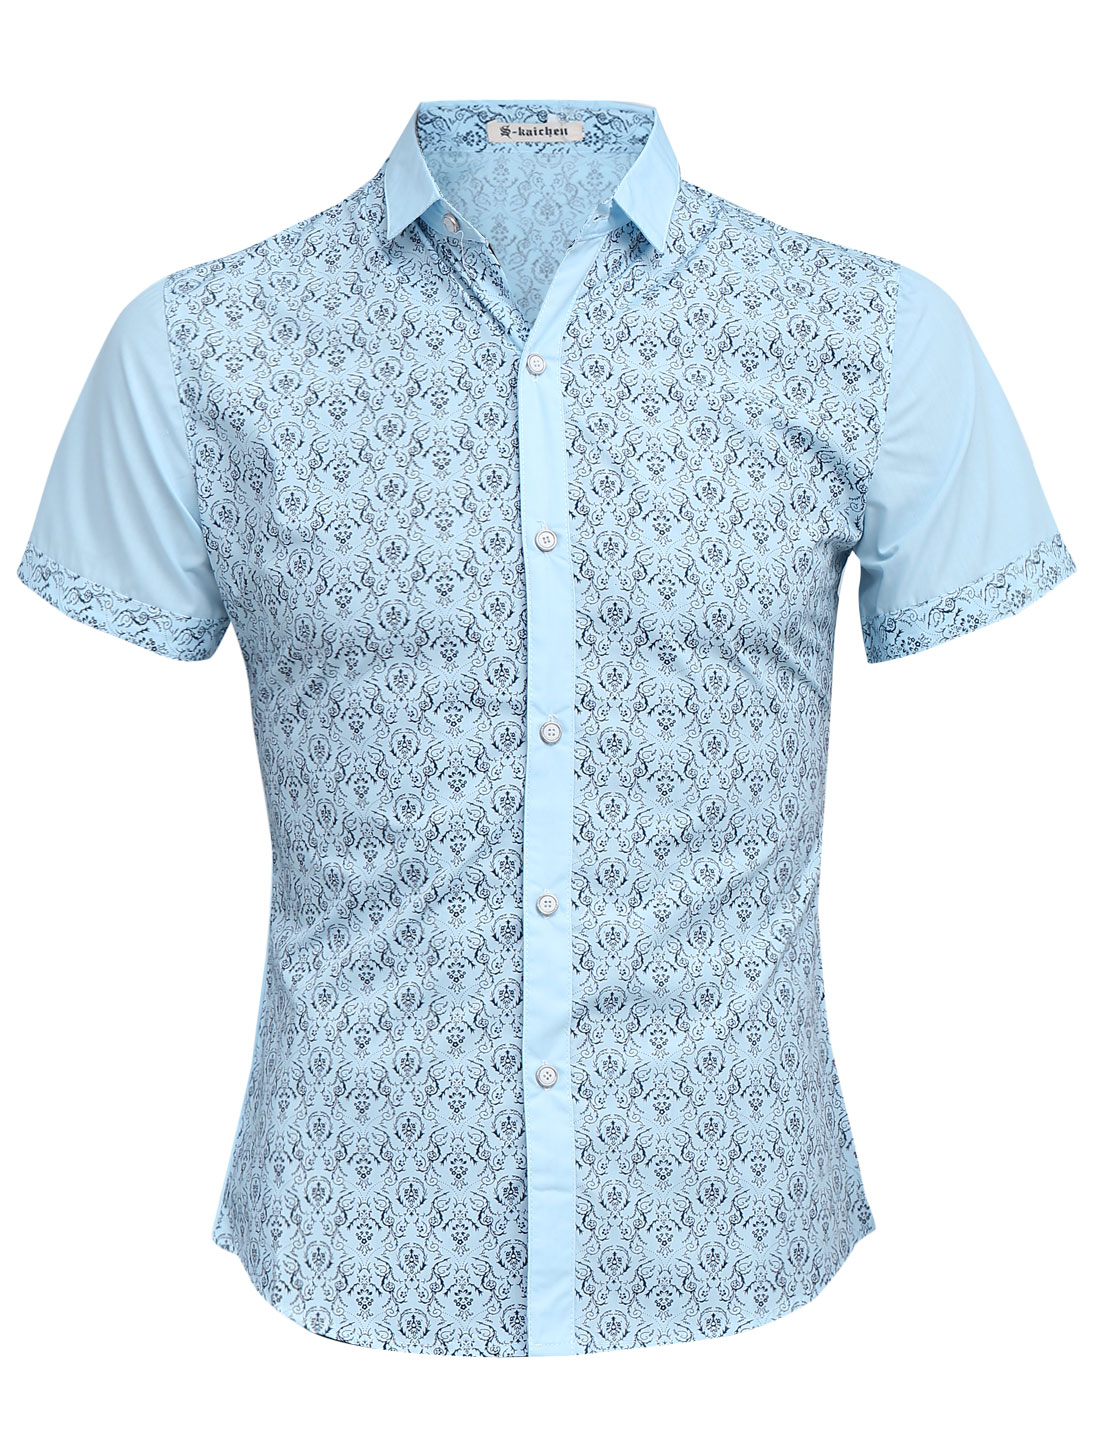 Men Floral Prints Point Collar Panel Design Slim Leisure Shirt Sky Blue S